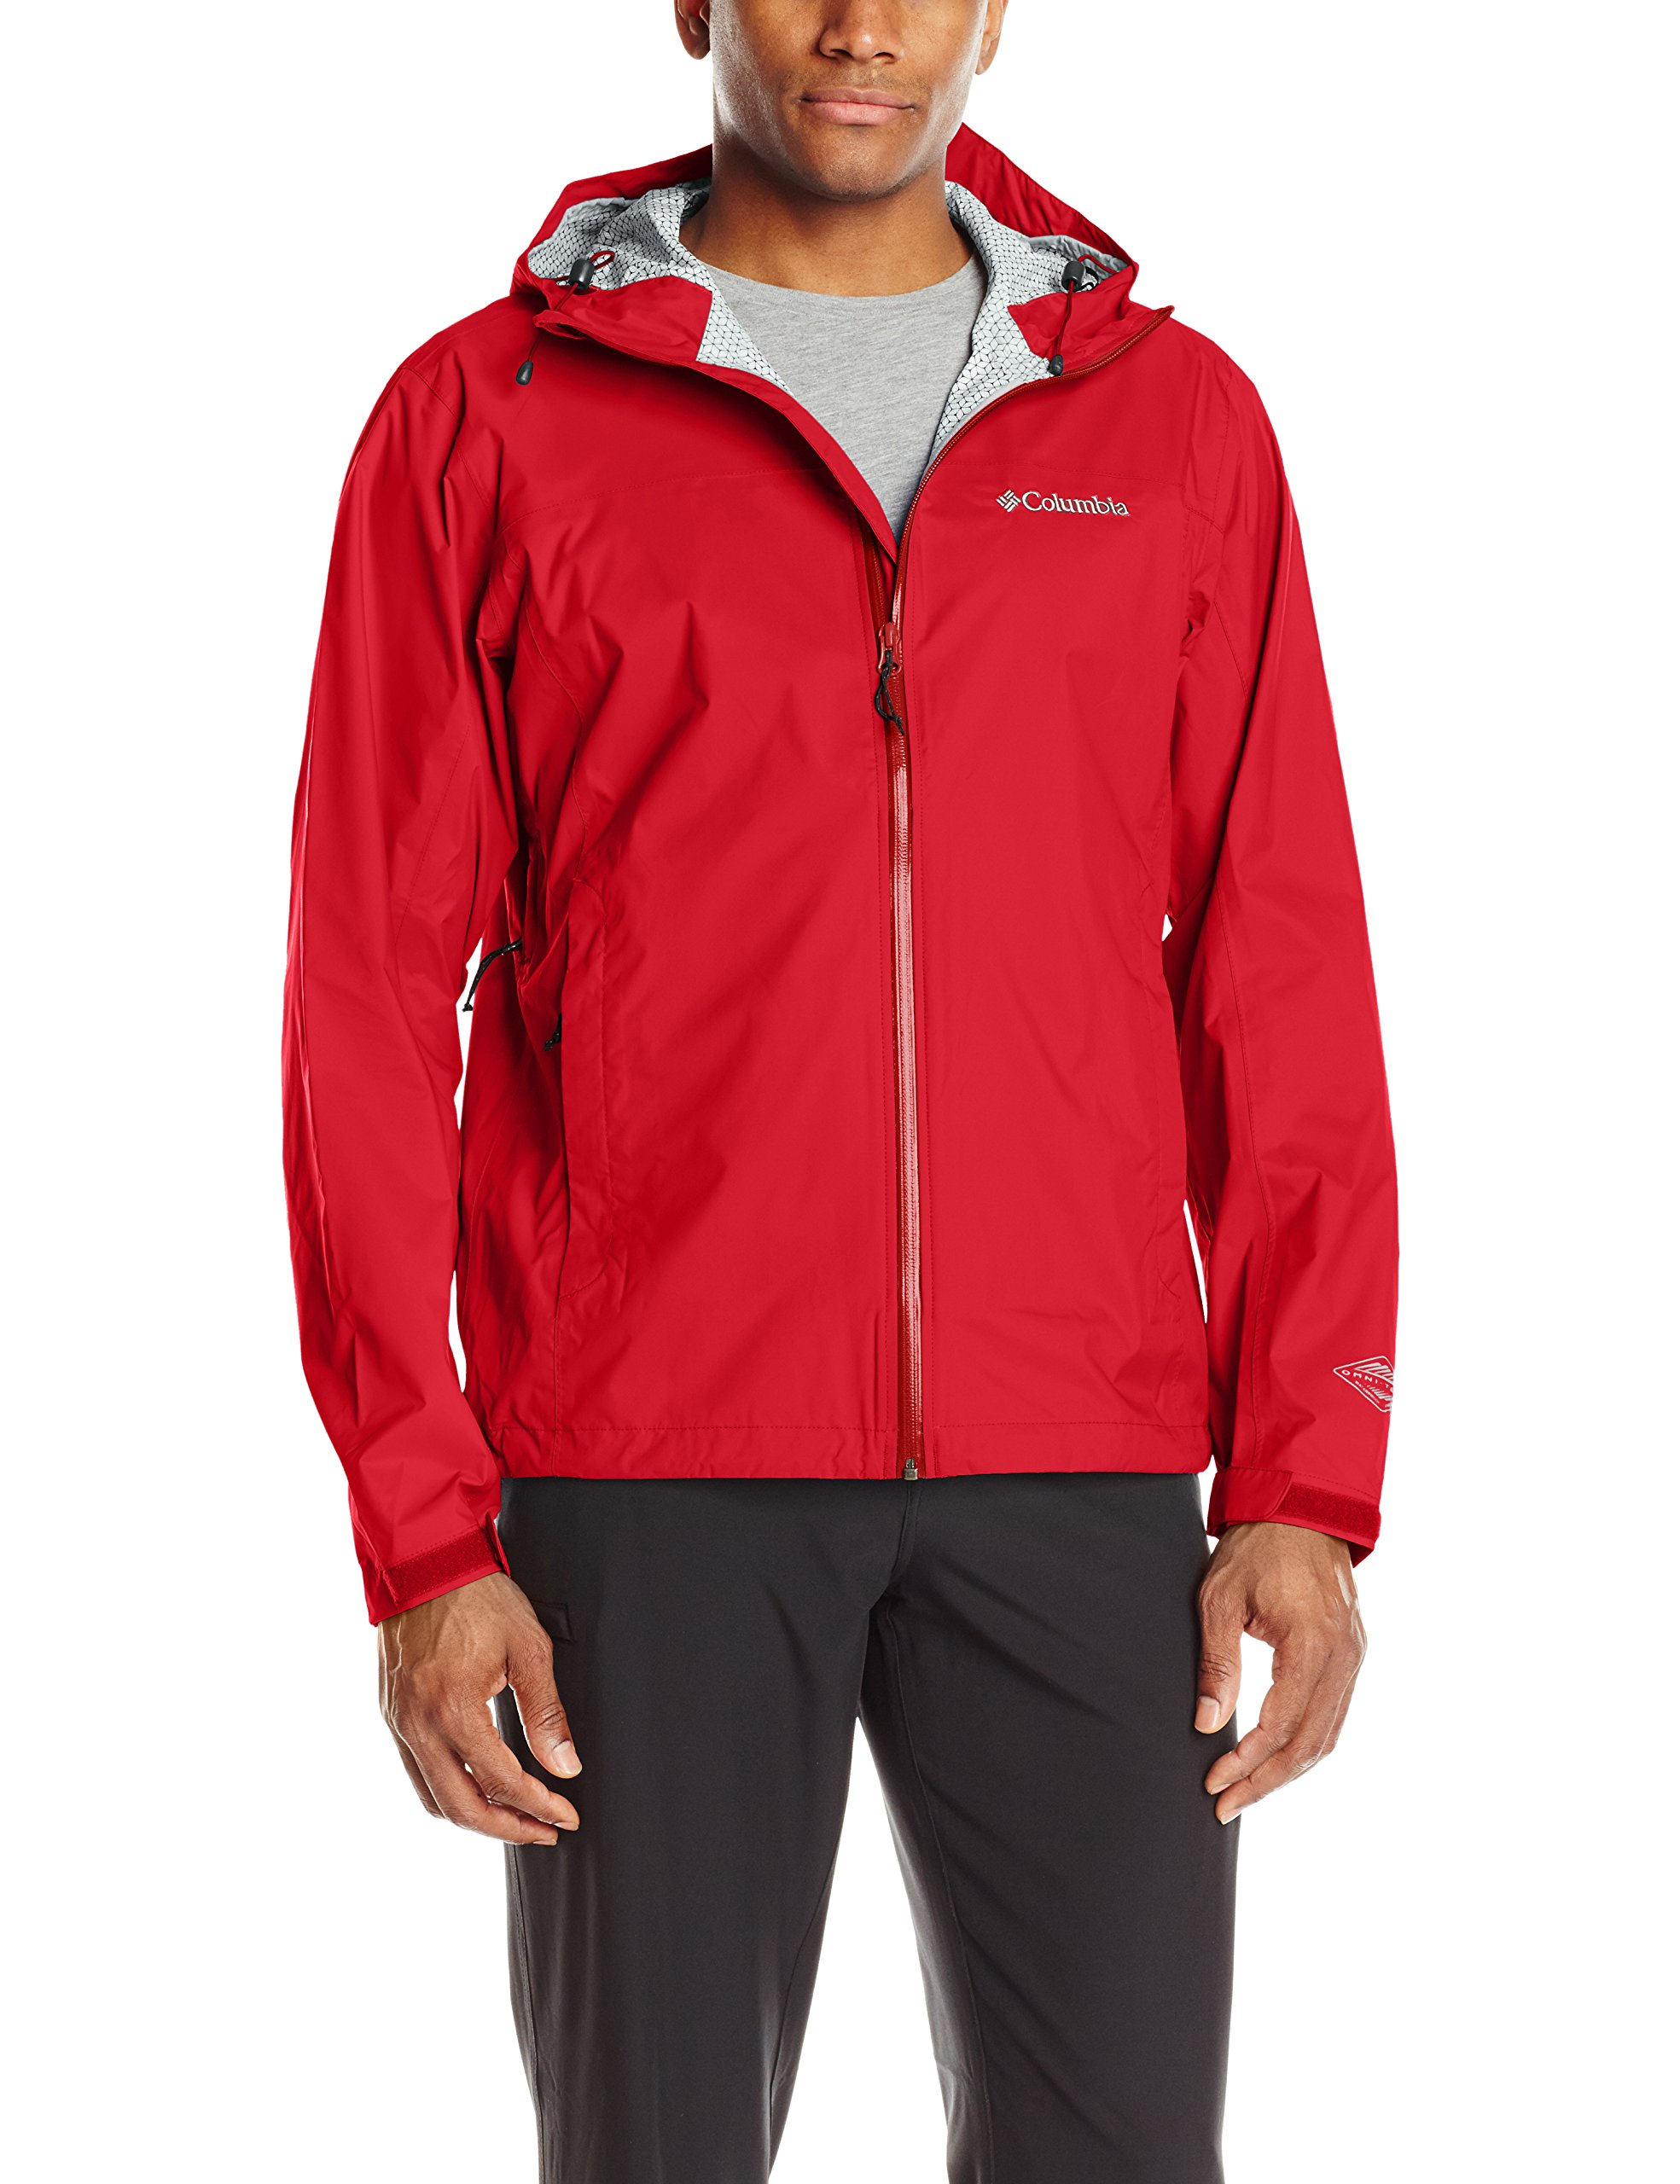 Columbia Men's evapouration jacket, Mountain Red, XX-Large by Columbia